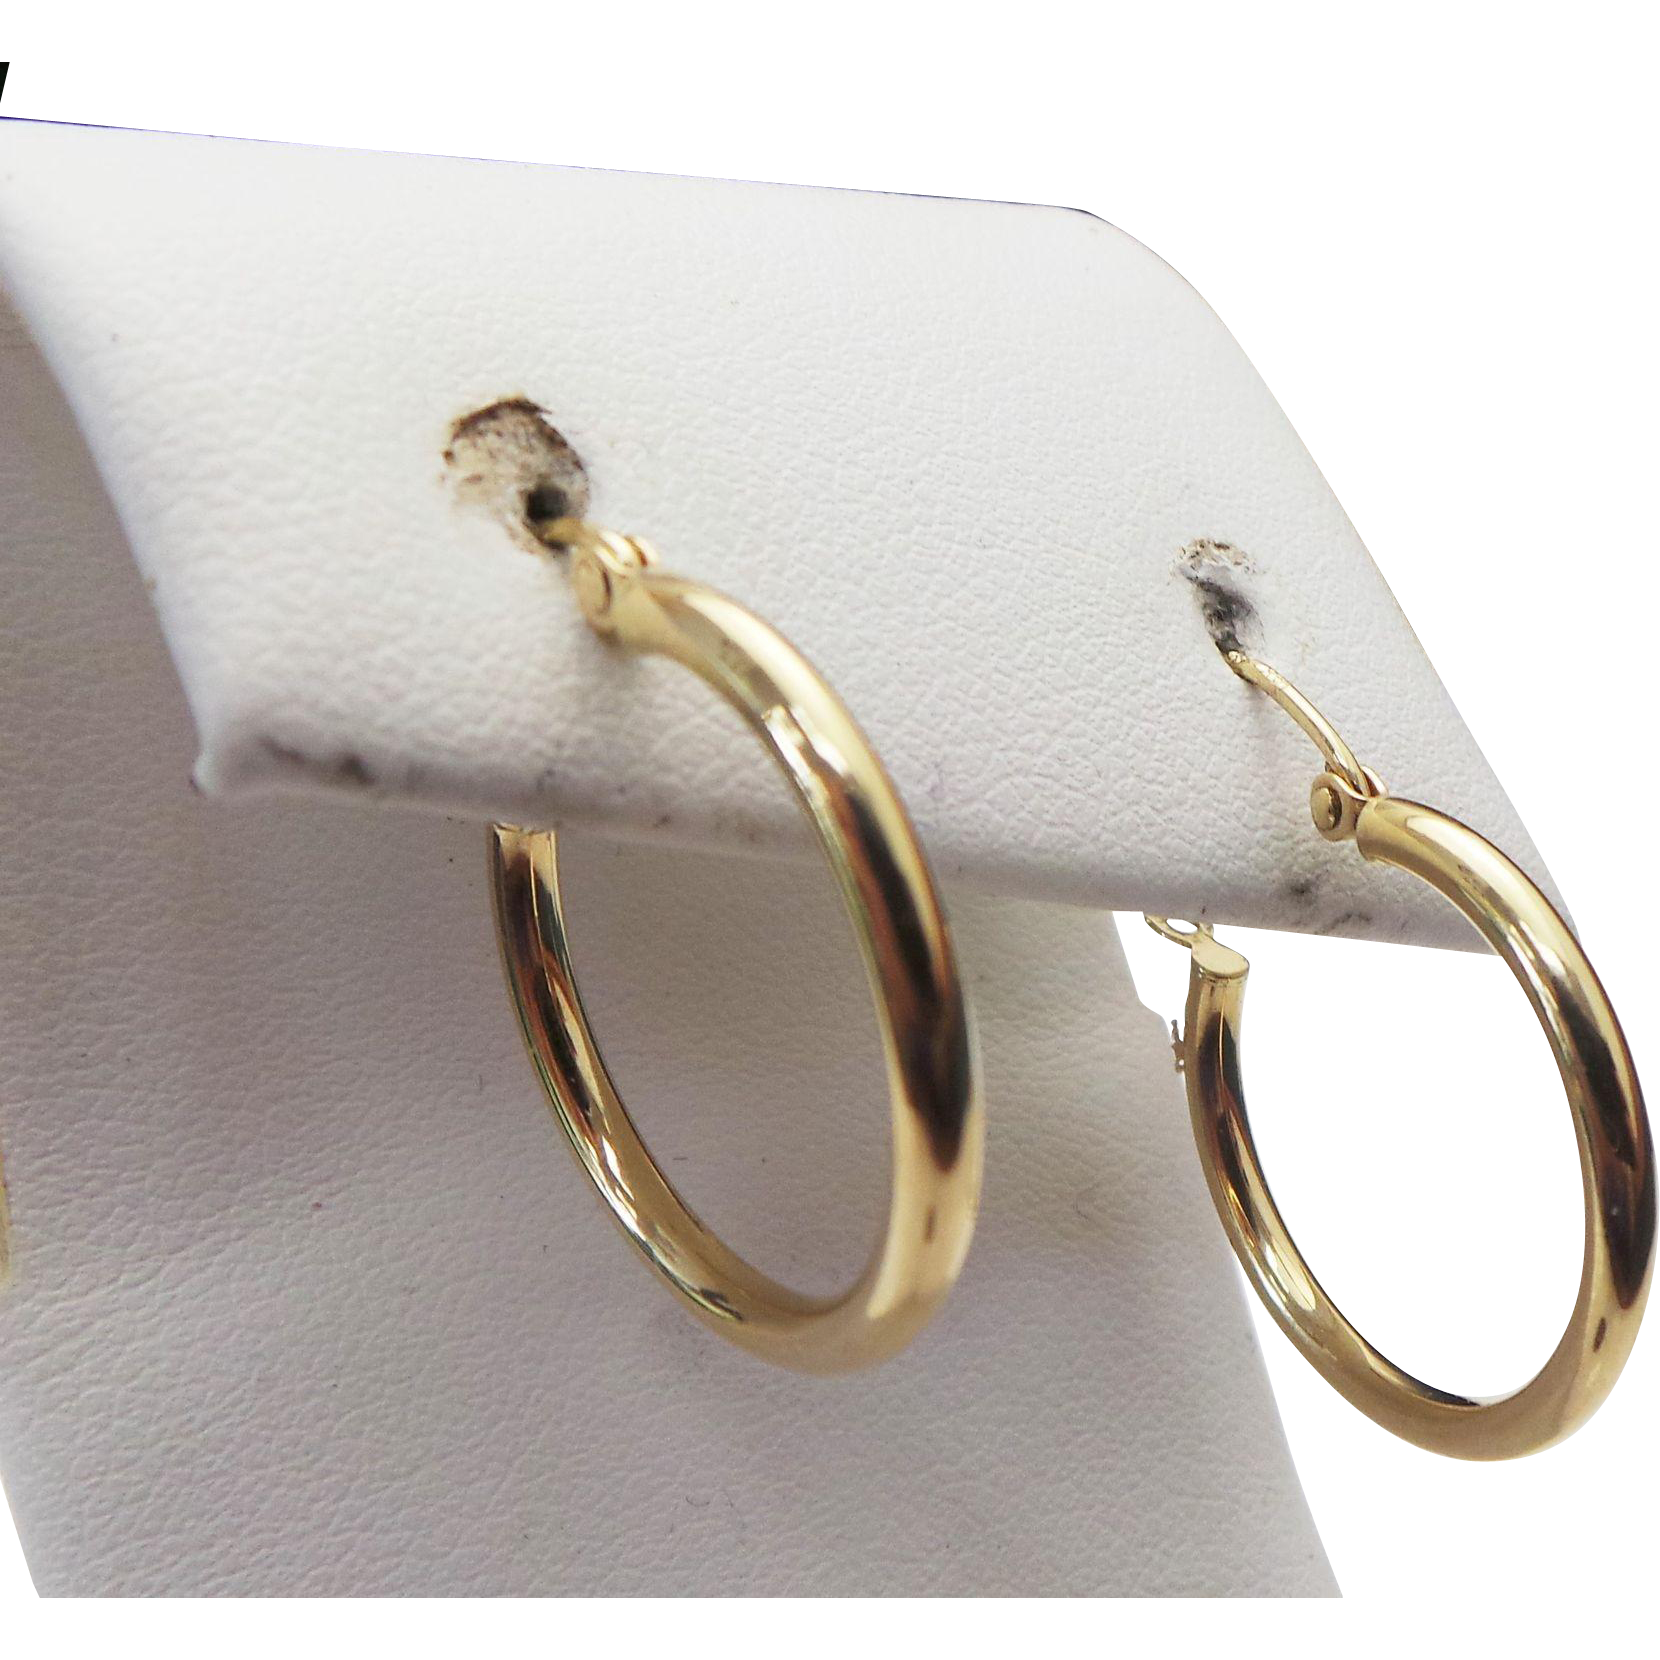 14k yellow gold medium hoop earrings from